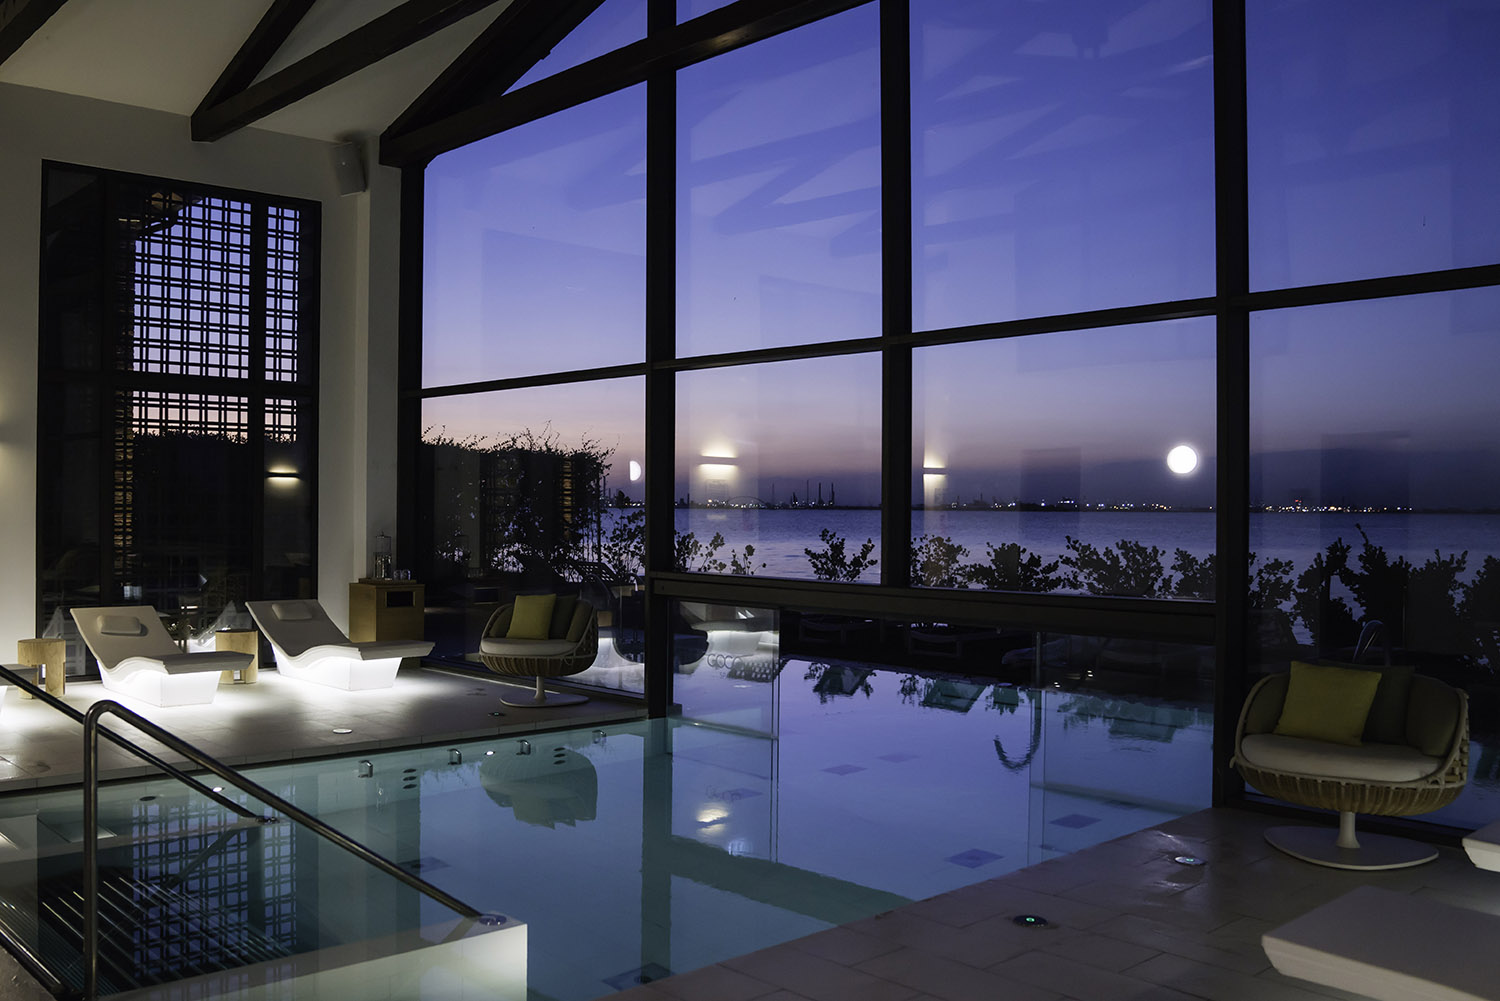 JW Marriott Venice Resort & Spa is offering a unique wellness experience dedicated to evening relaxation.